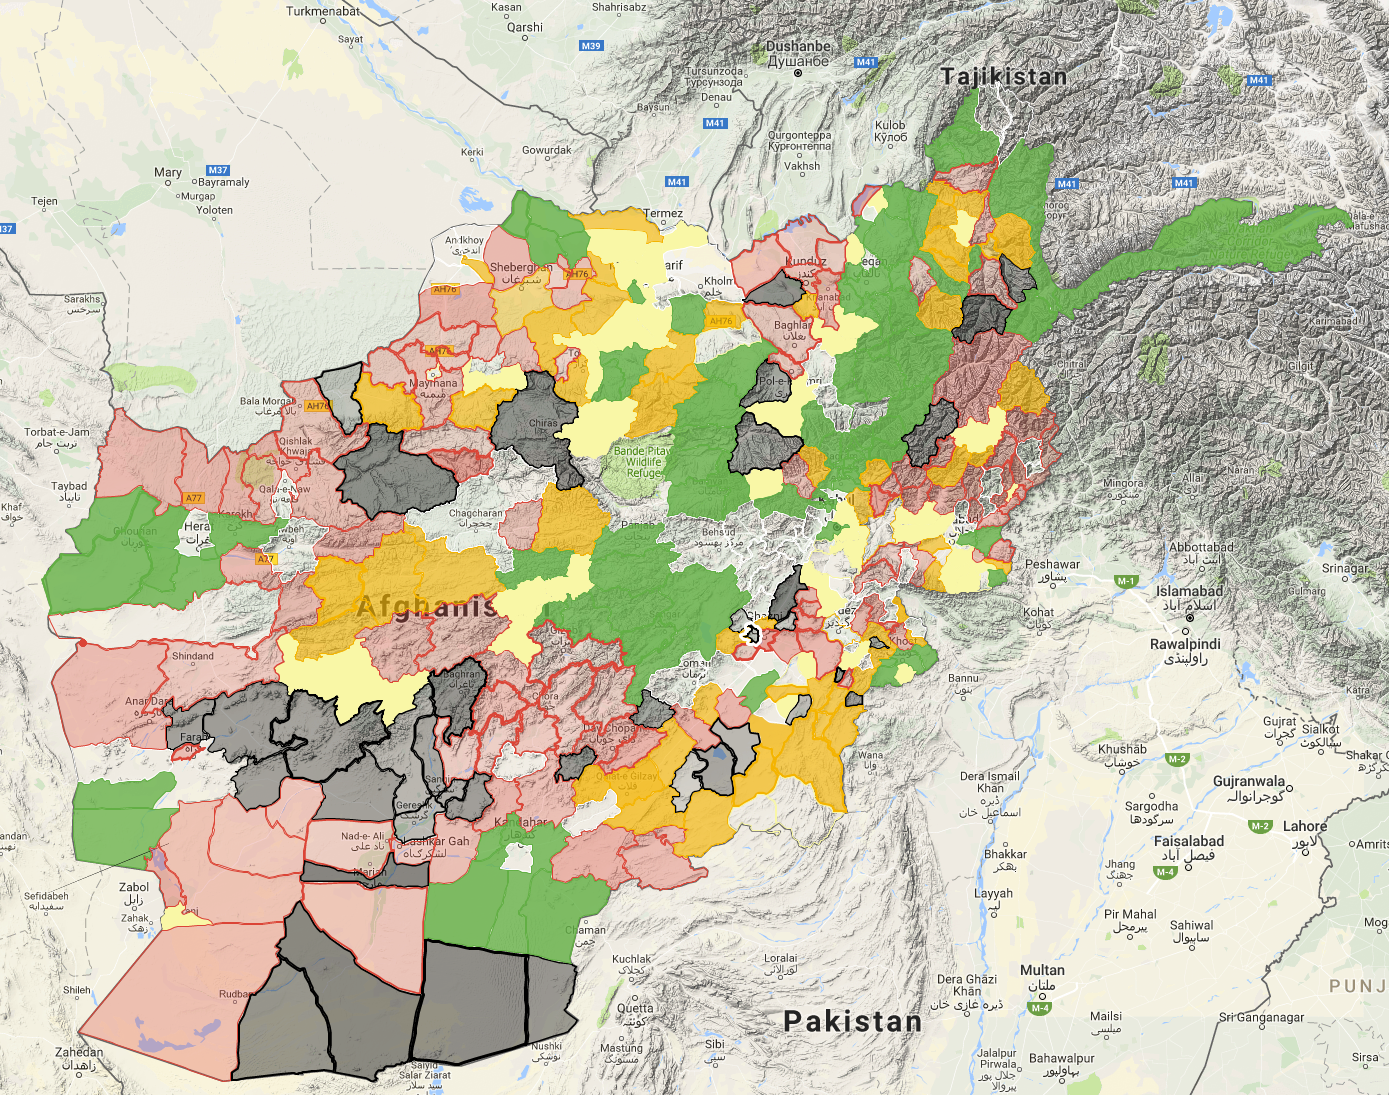 Taliban Releases Map of Territory It Controls in Afghanistan